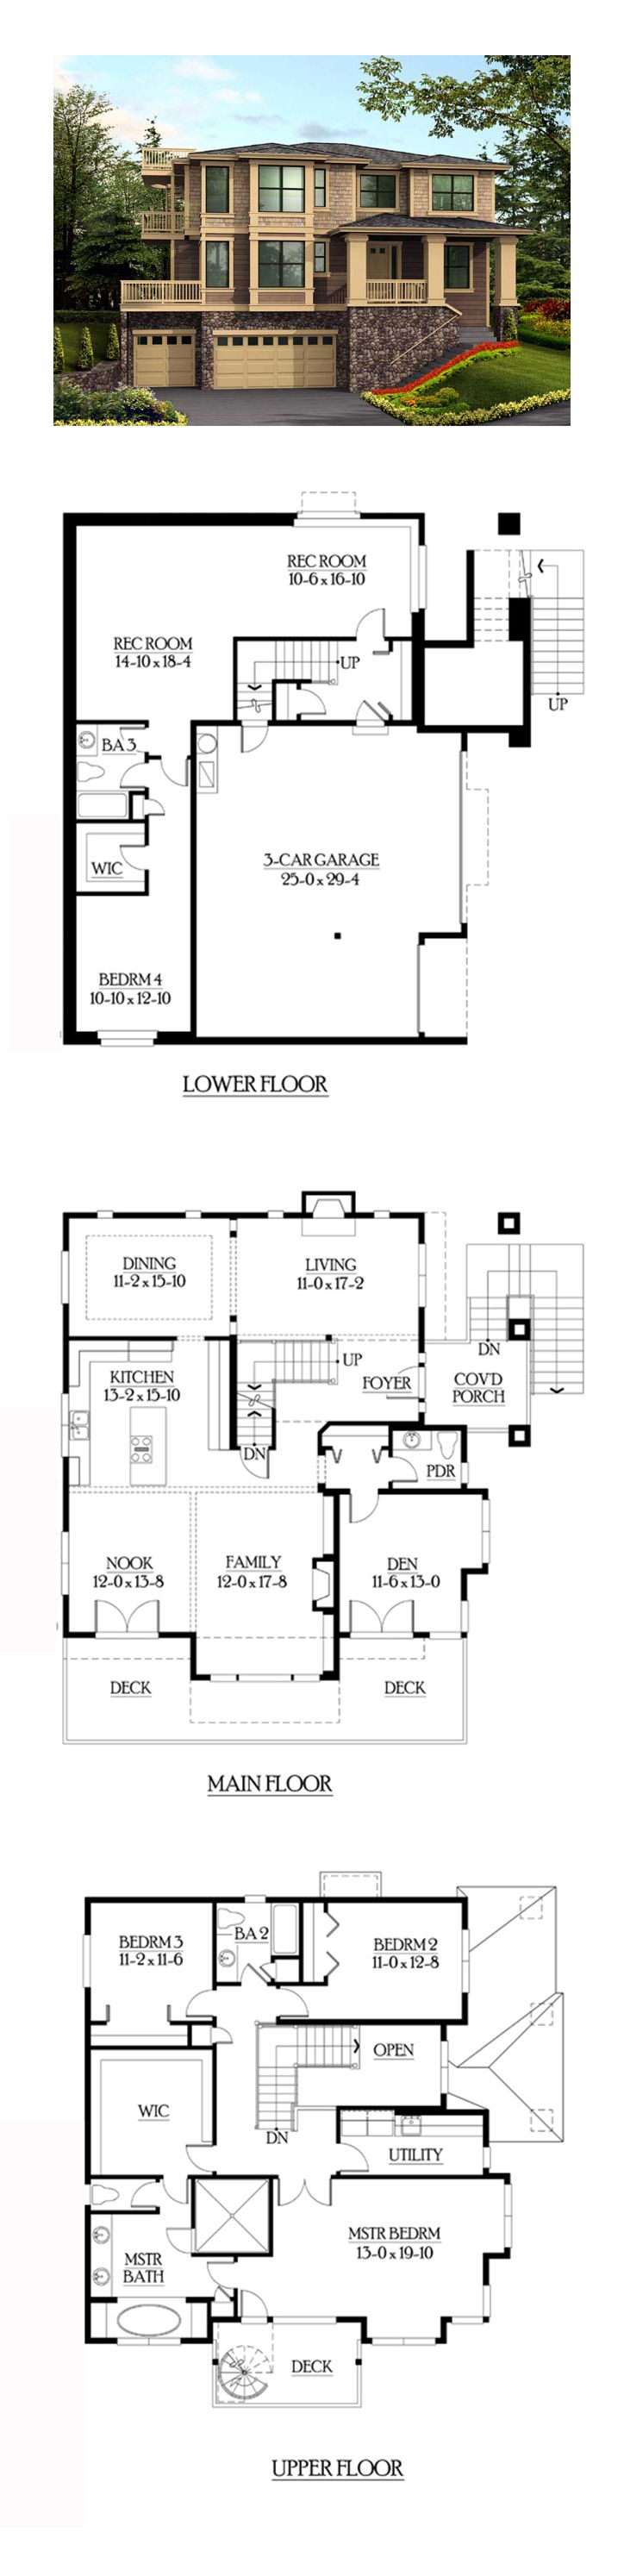 Southwest Style House Plan 87568 With 4 Bed 4 Bath 3 Car Garage Farmhouse Floor Plans Basement House Plans Best House Plans